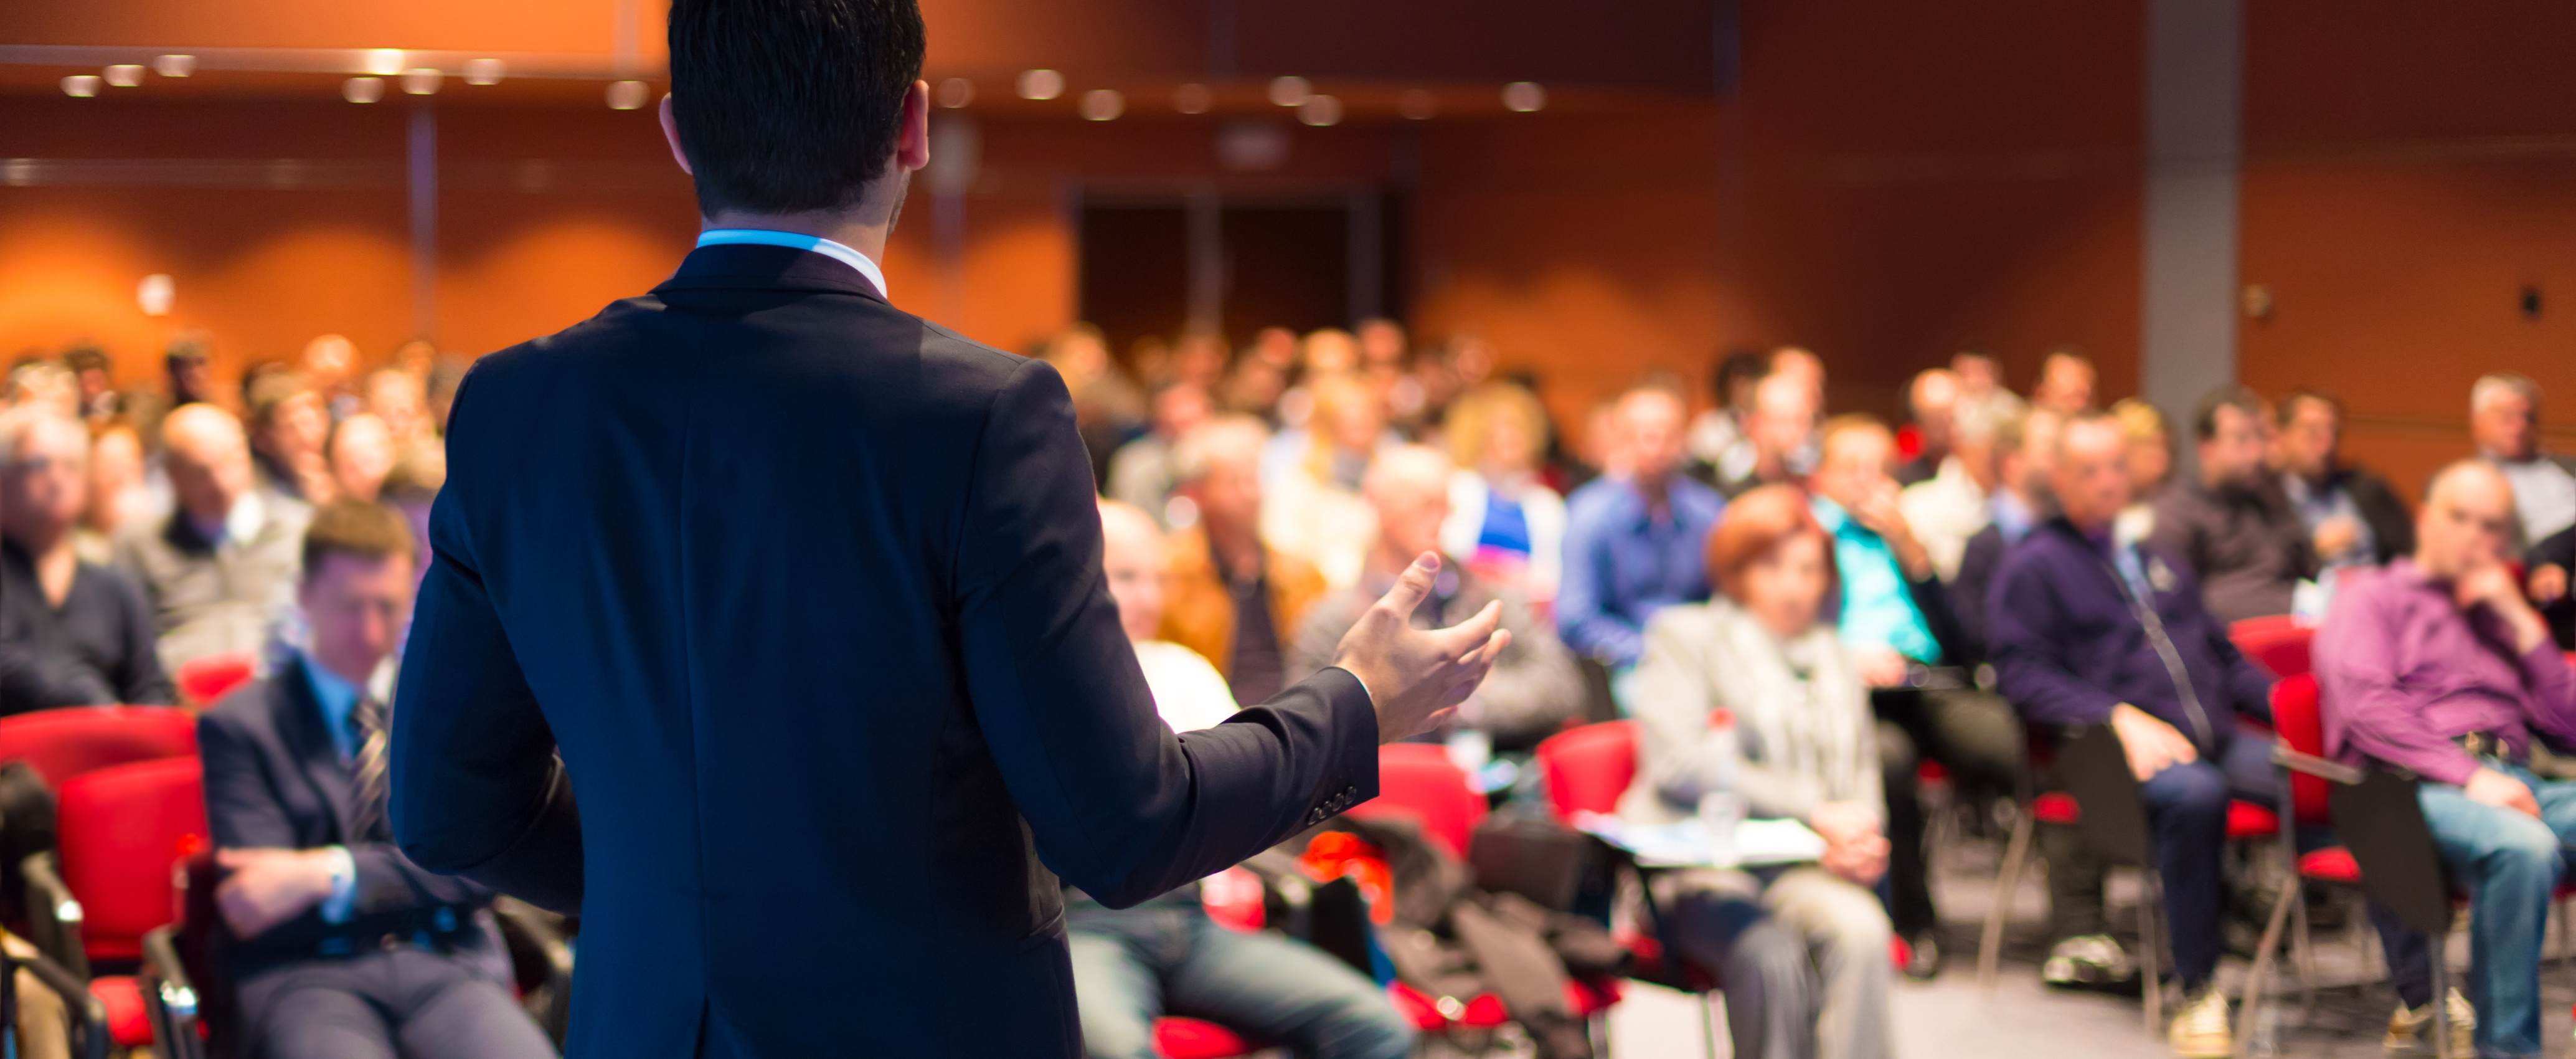 What We Learned at the Sales Enablement Society's Inaugural Conference